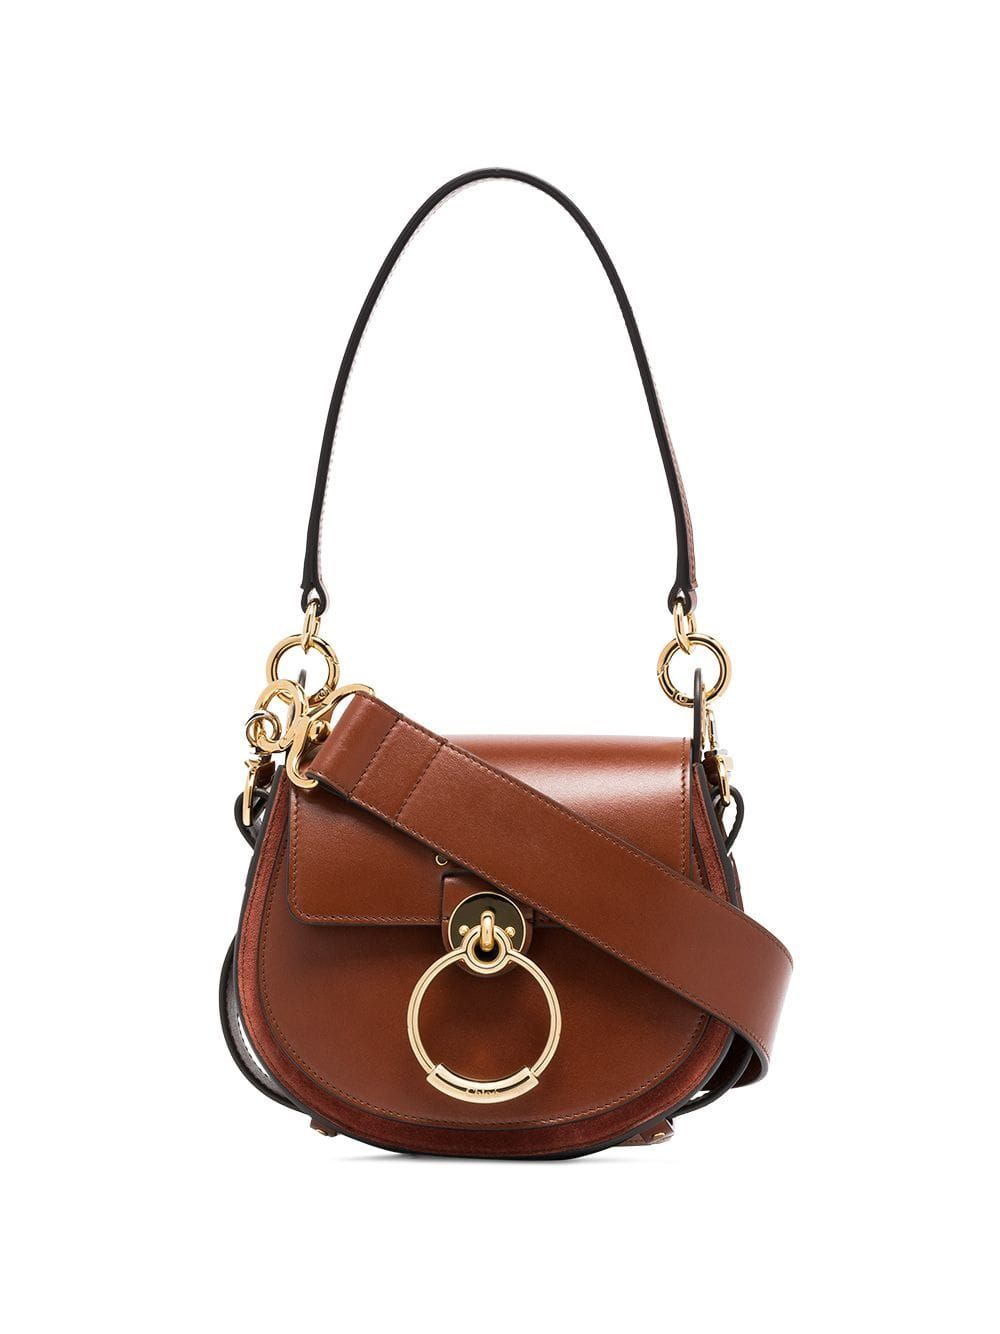 395873319a82 Chloé brown tess leather and suede shoulder bag